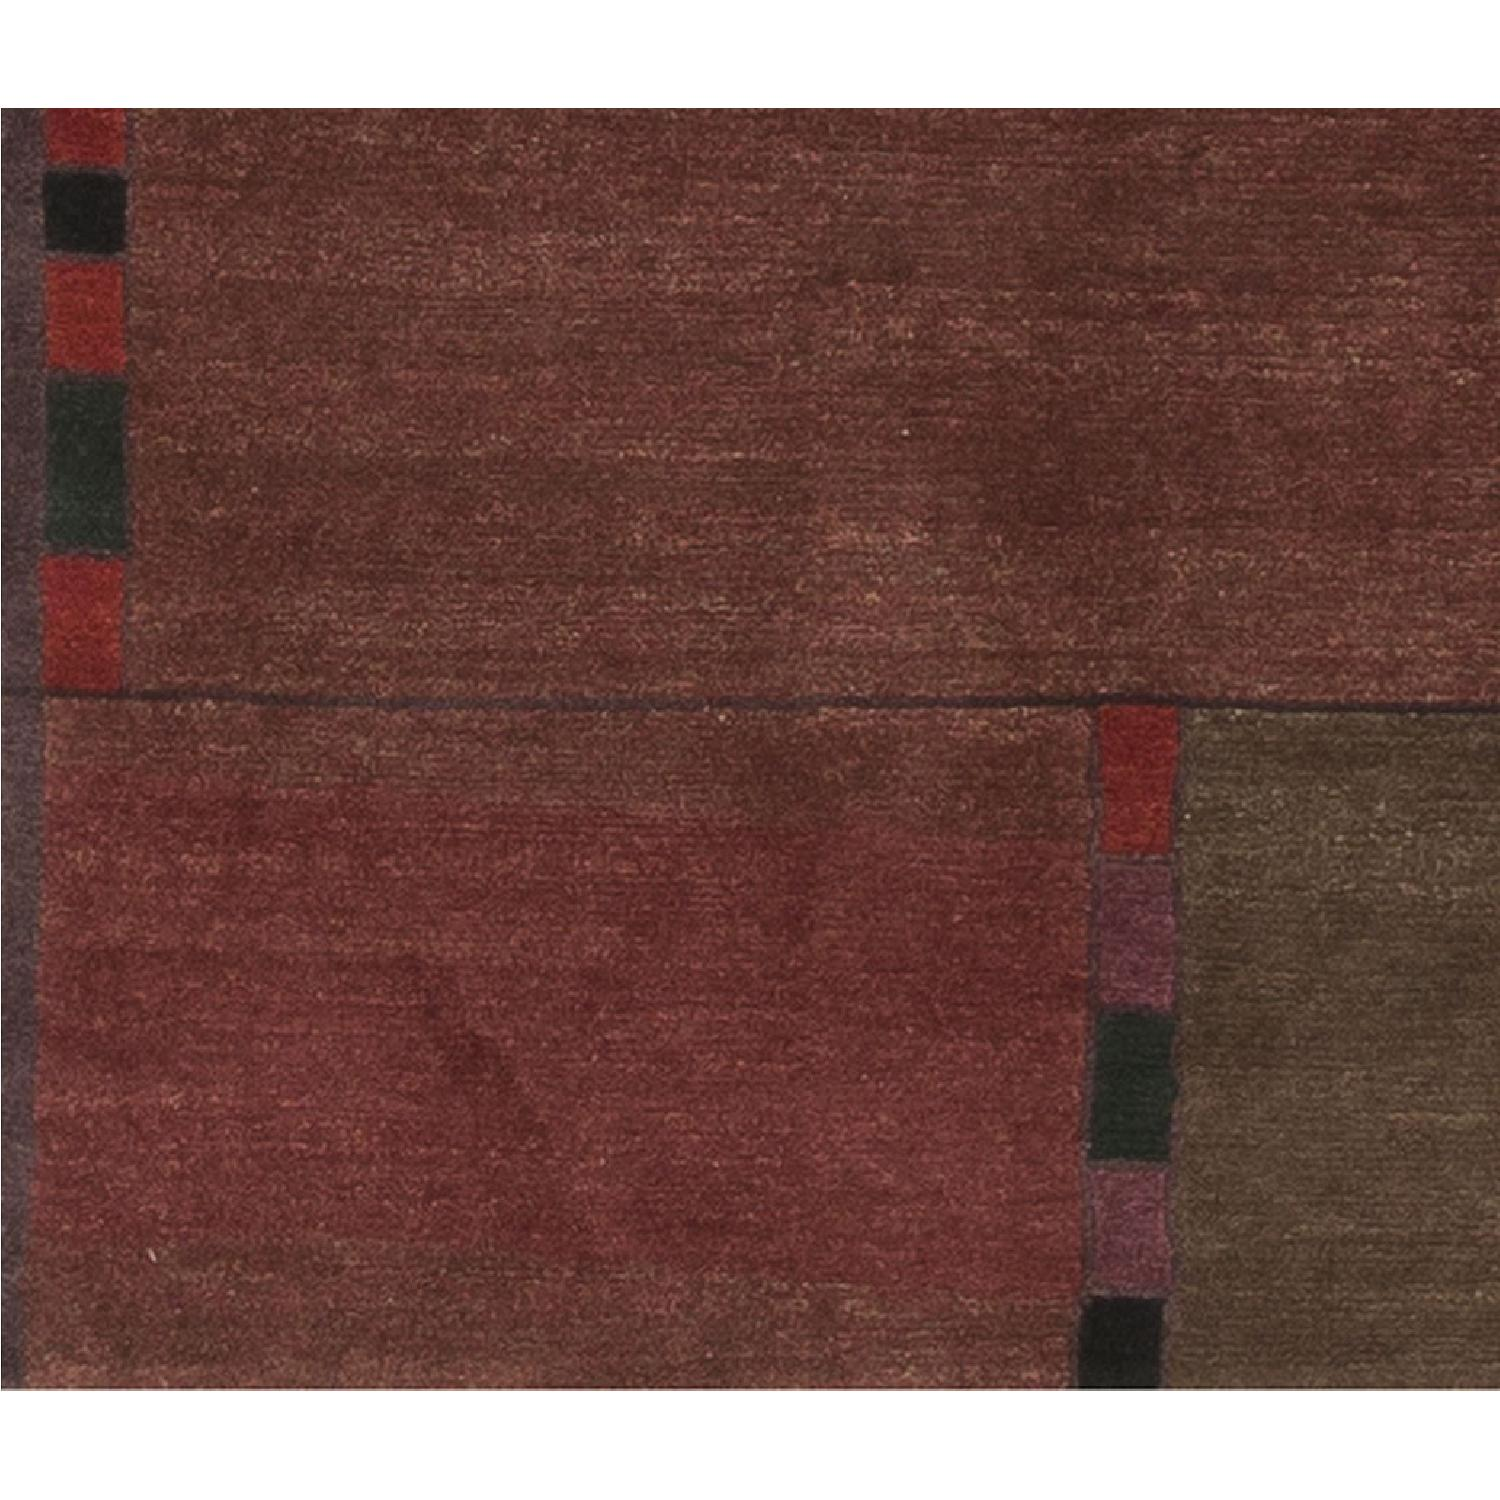 Modern Contemporary Hand Knotted Wool Rug in Red - image-2